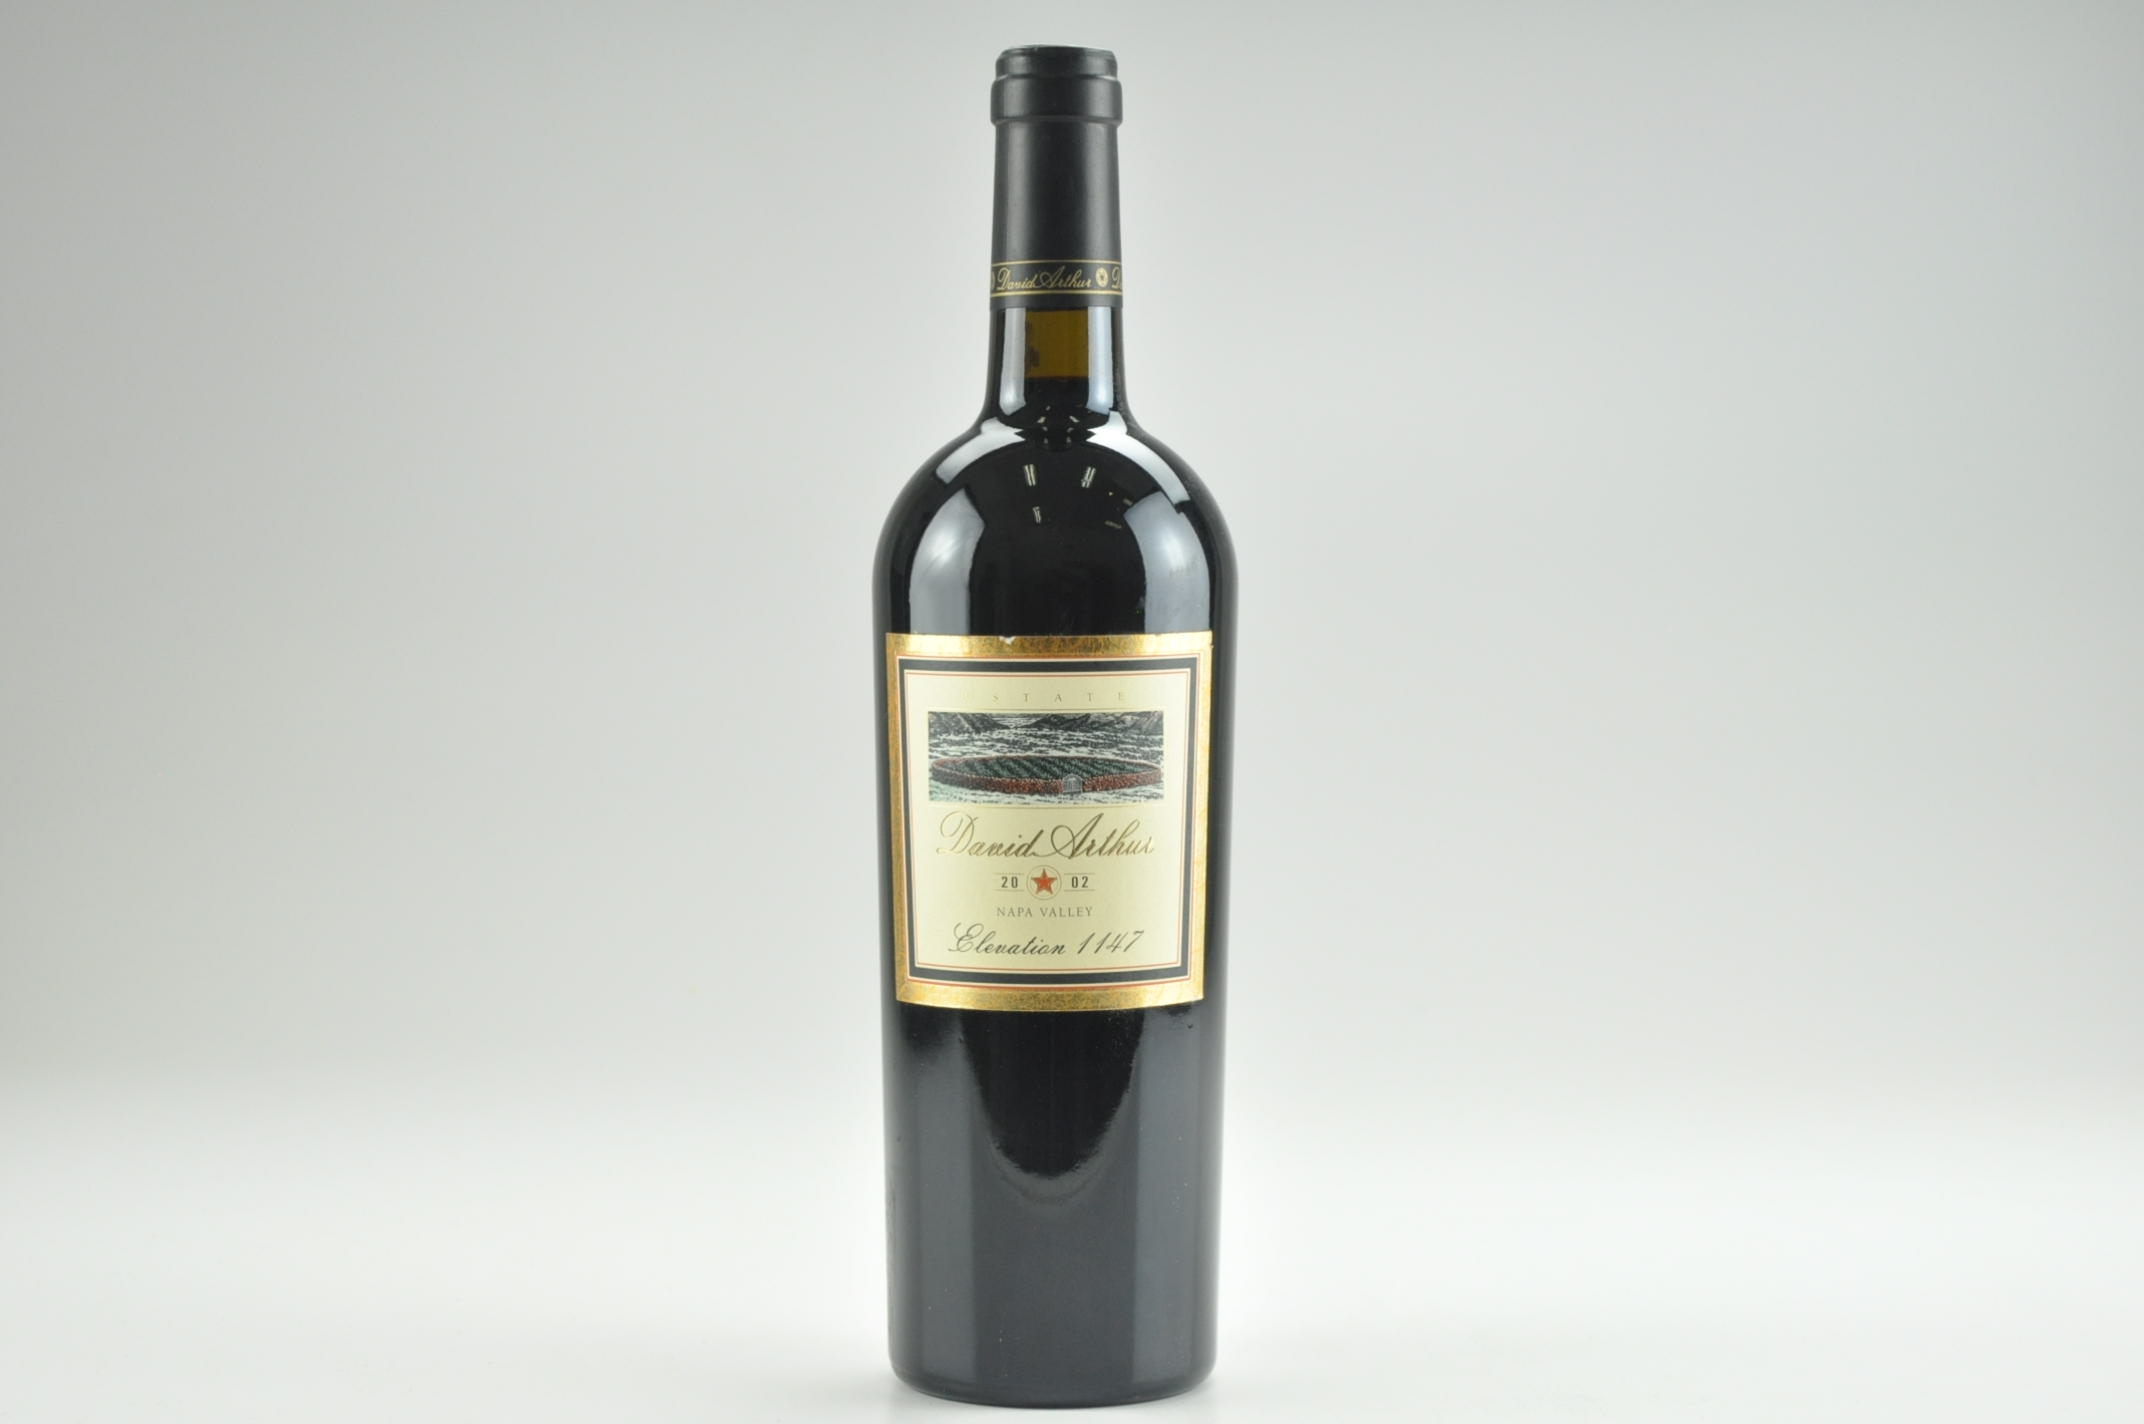 2002 David Arthur Cabernet Sauvignon Elevation 1147, Rutherford RP--95